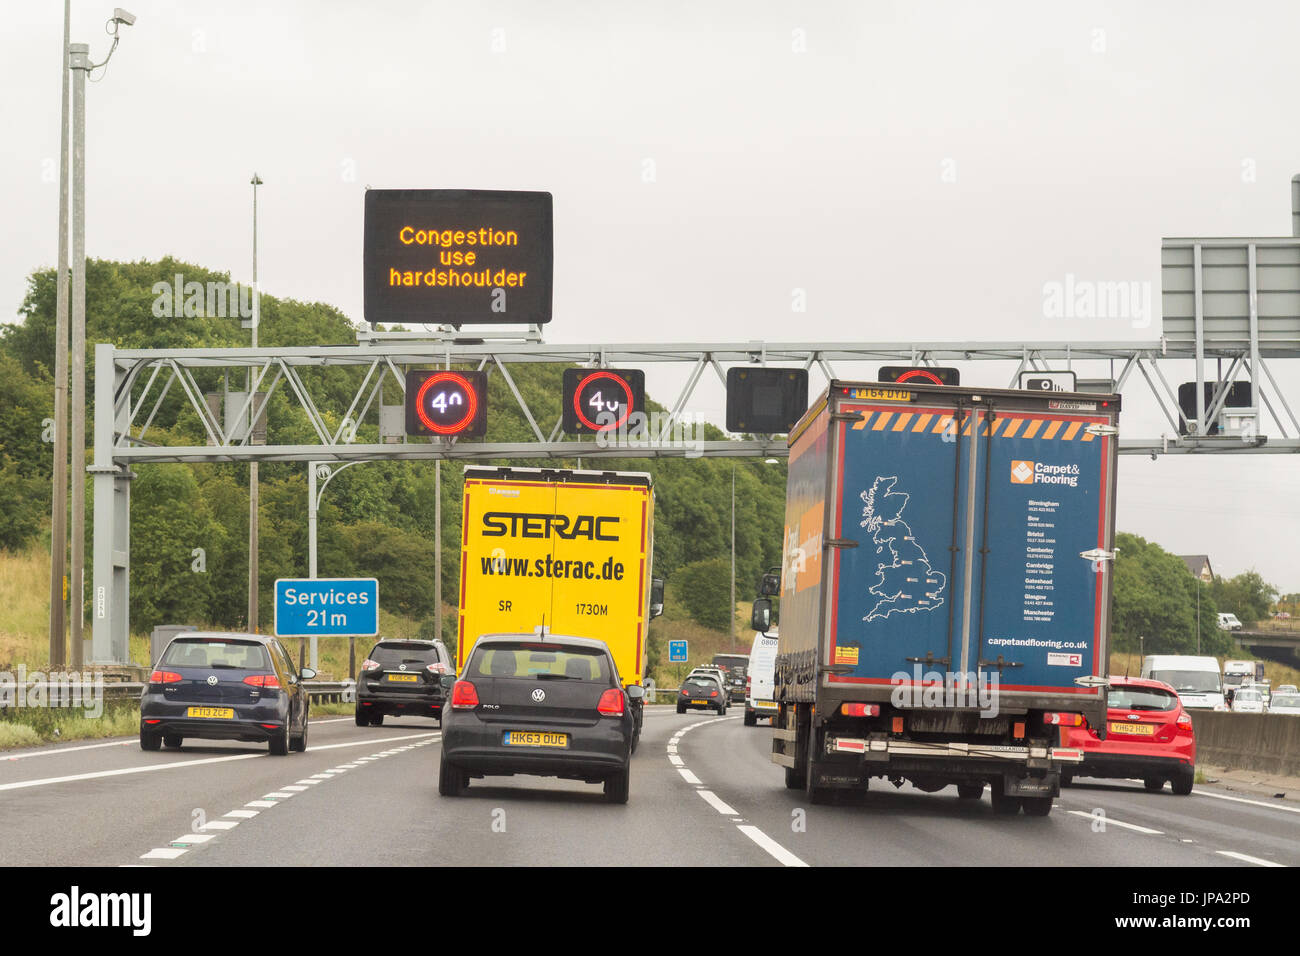 Smart Motorway M6 - UK - congestion use hard shoulder sign - Stock Image